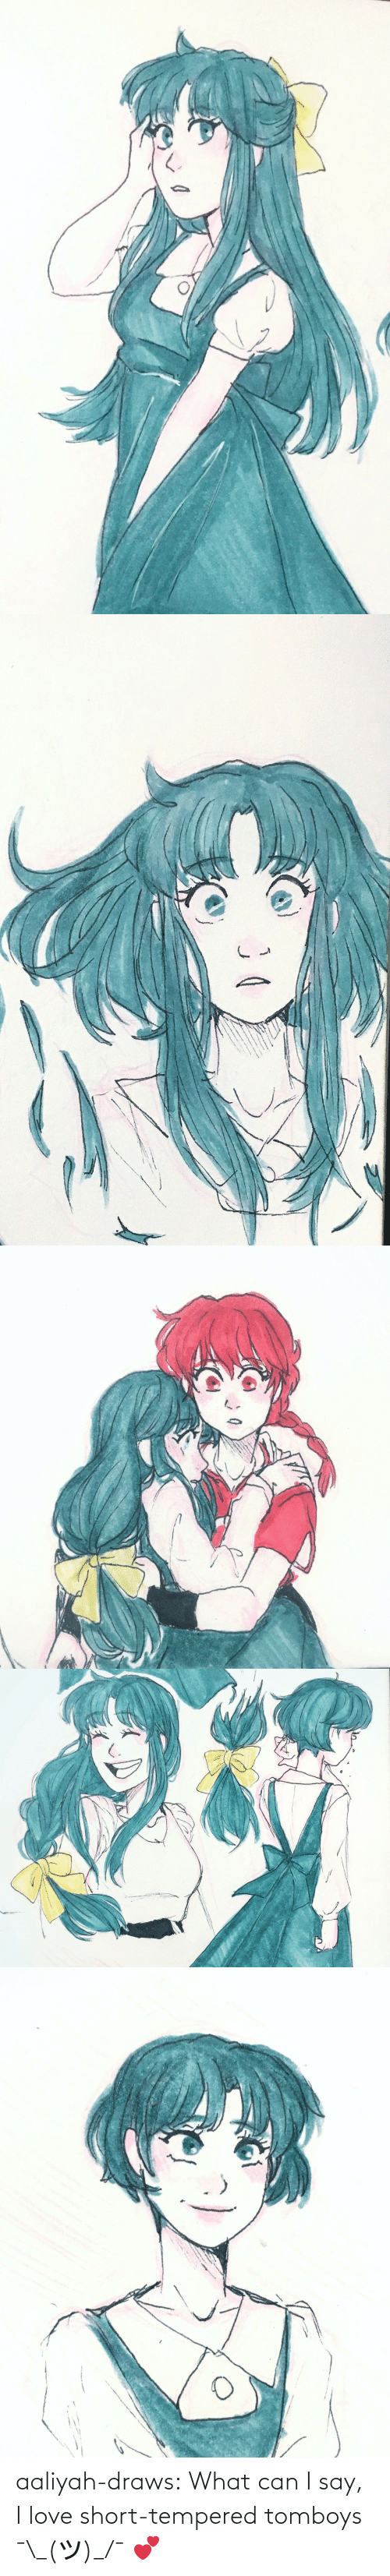 Love, Target, and Tumblr: aaliyah-draws:  What can I say, I love short-tempered tomboys  ¯\_(ツ)_/¯ 💕